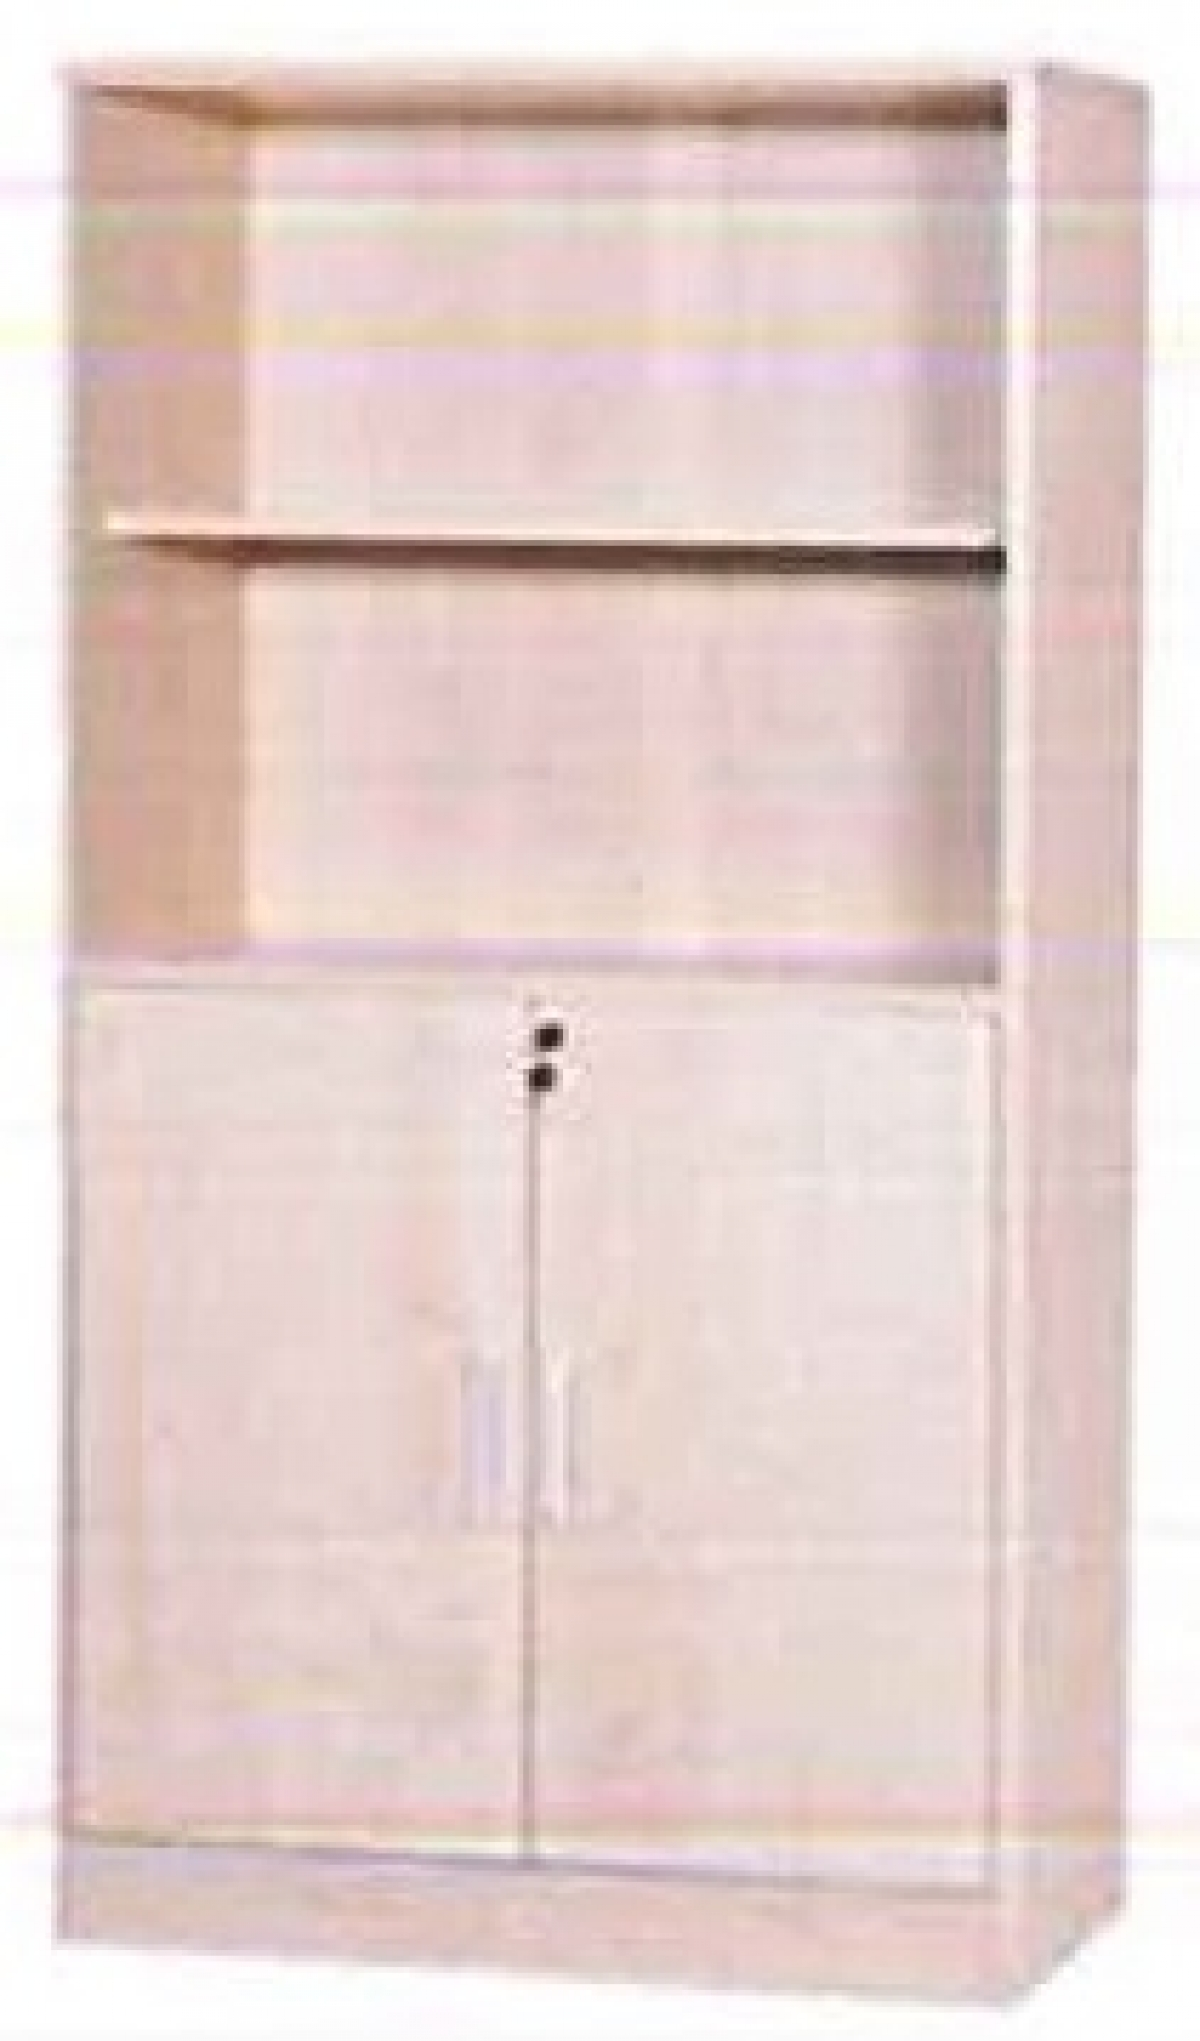 Medium Height Cabinet with Door Model: EH-JC1622 u2013 Furnitures Malaysia